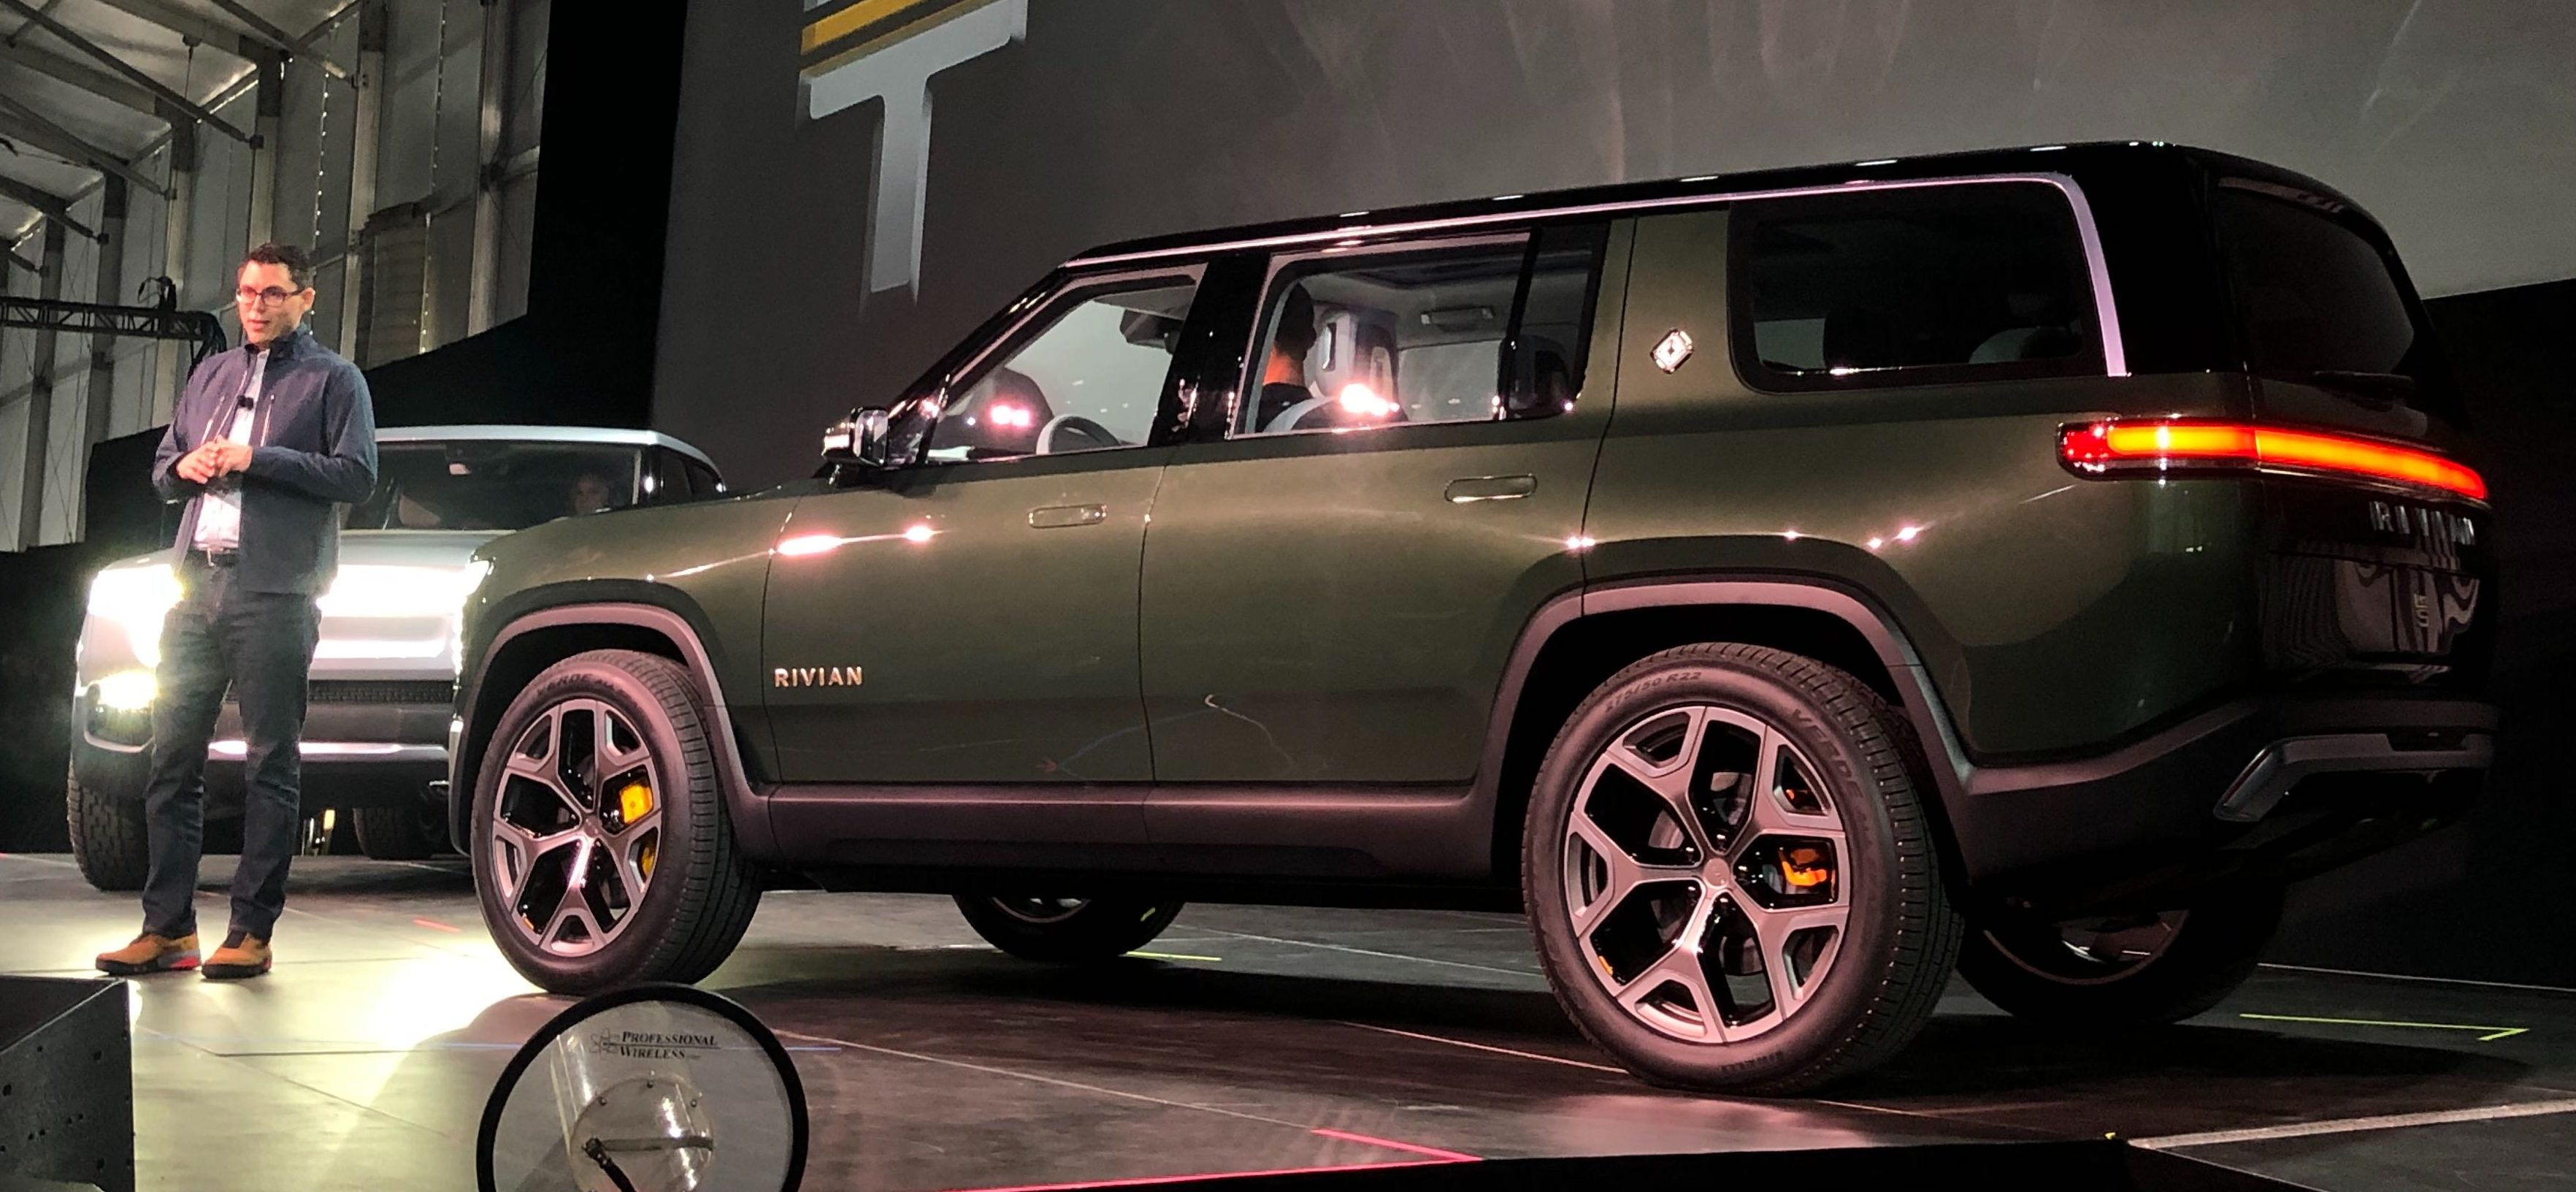 Tesla Gets Nod From Rivian Ceo For Combating Untruths About Electric Vehicles